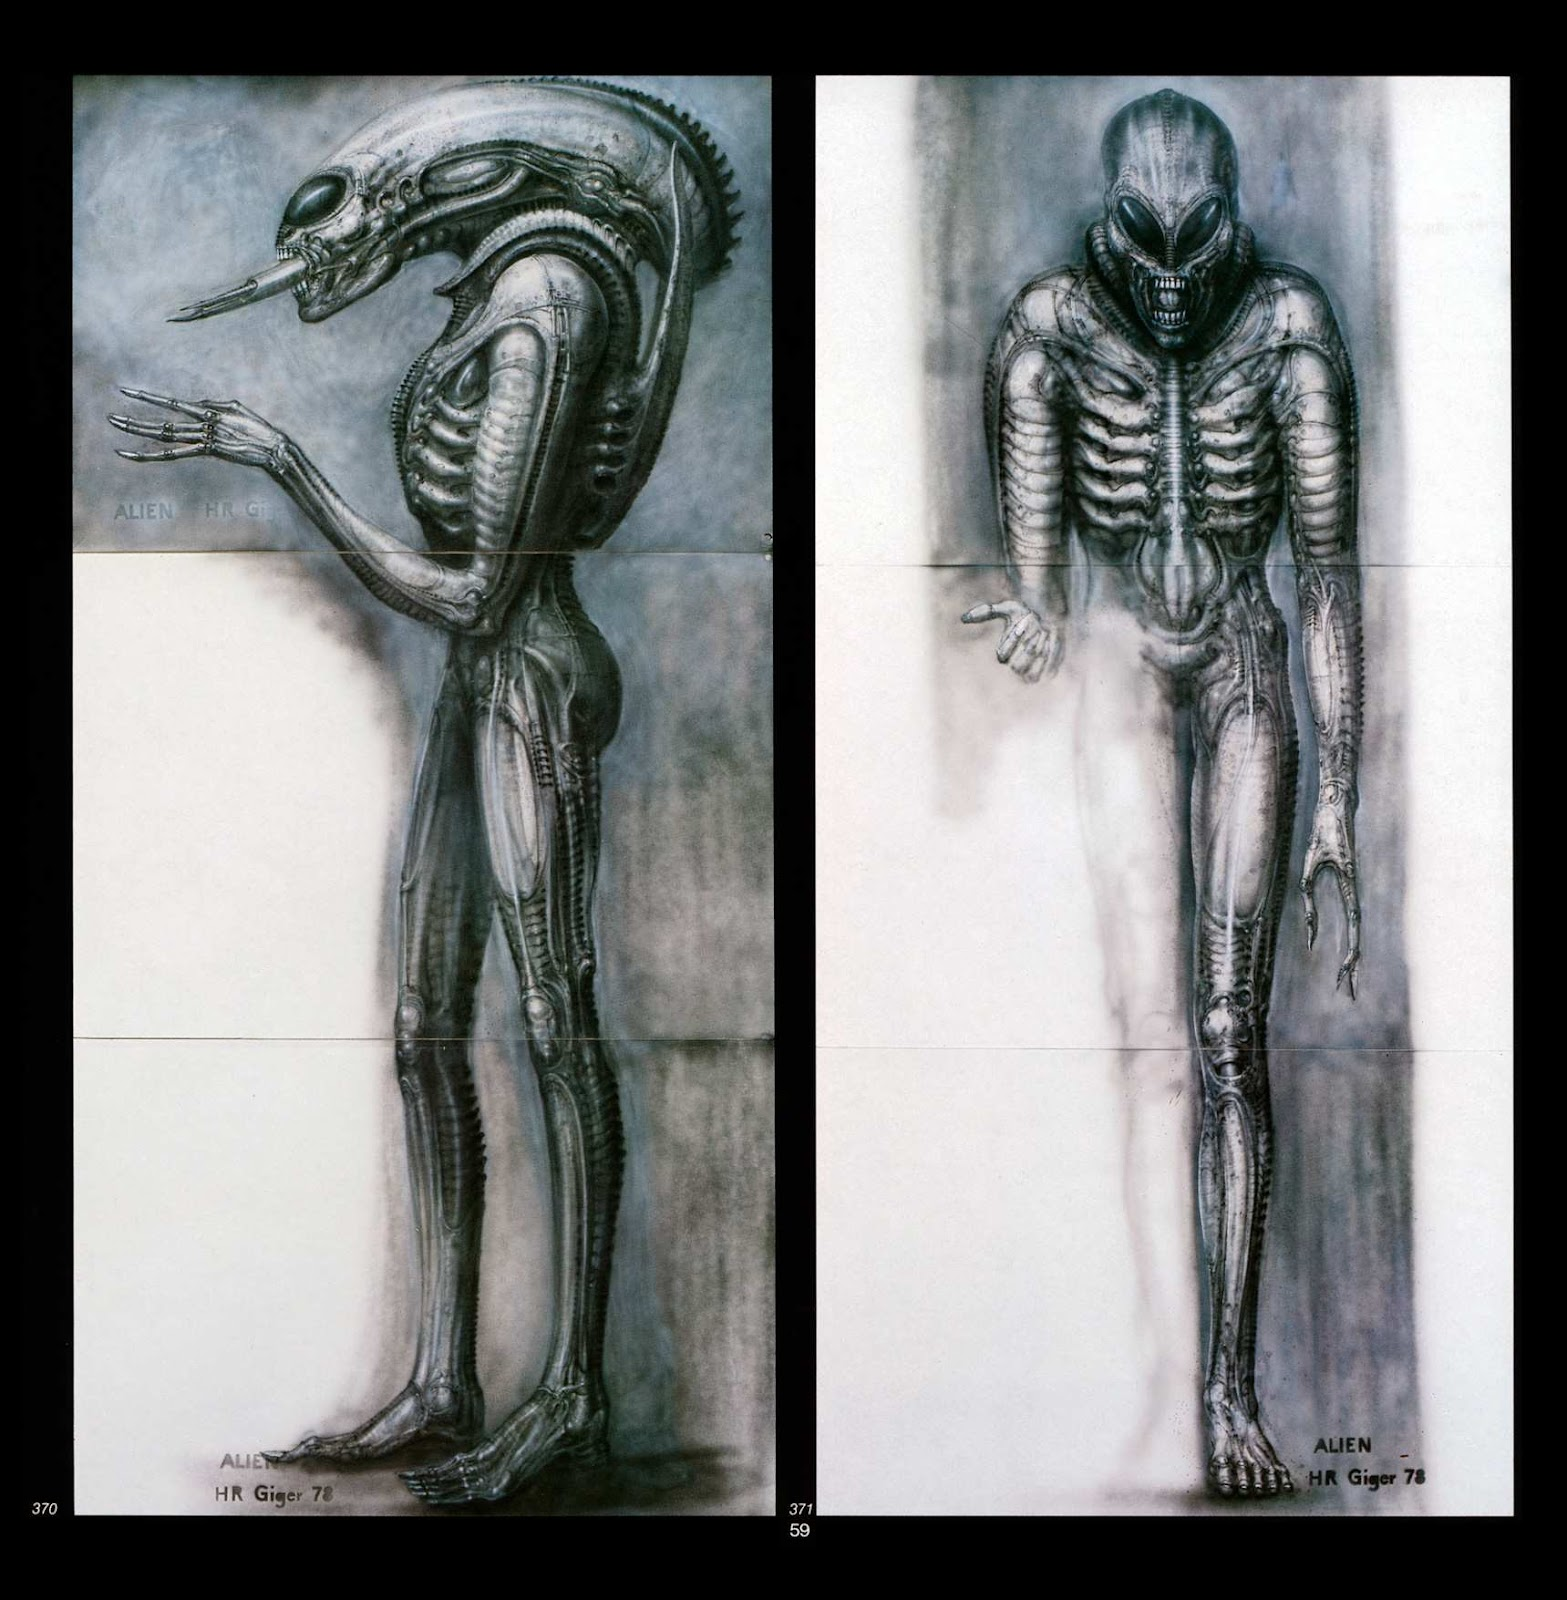 Read online Giger's Alien comic -  Issue # TPB - 61